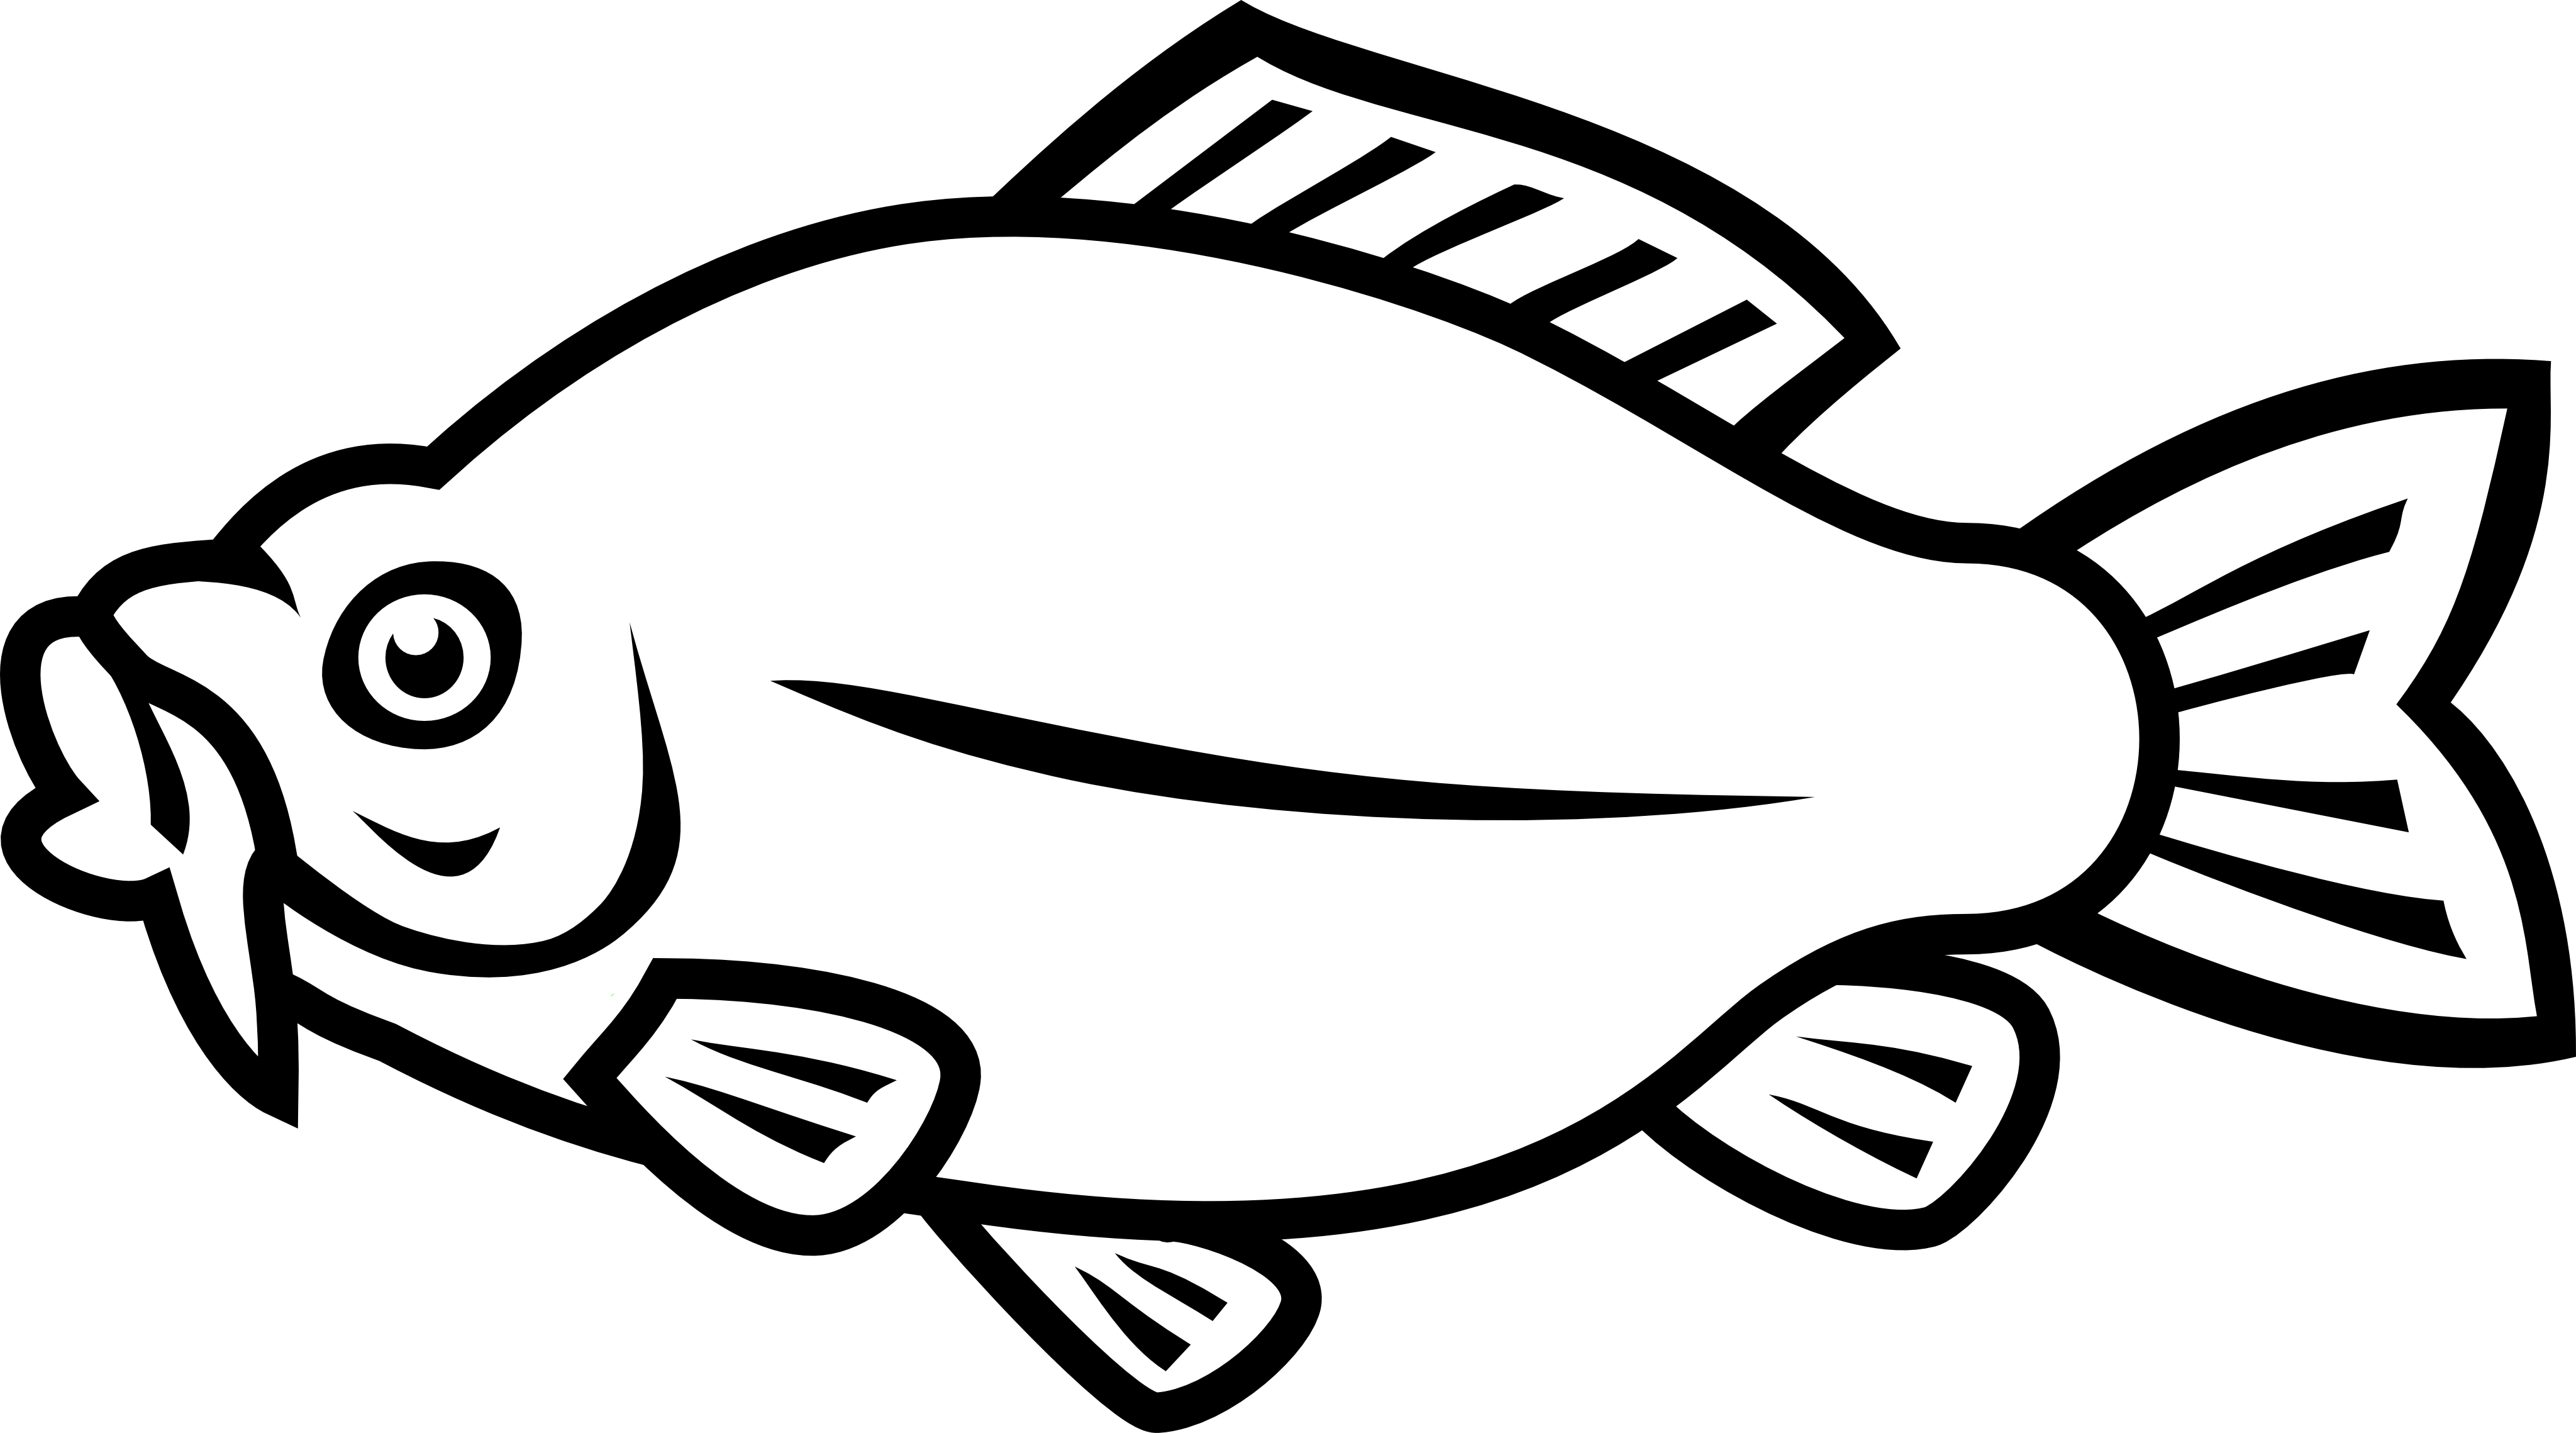 Isda Clipart 3 Clipart Station